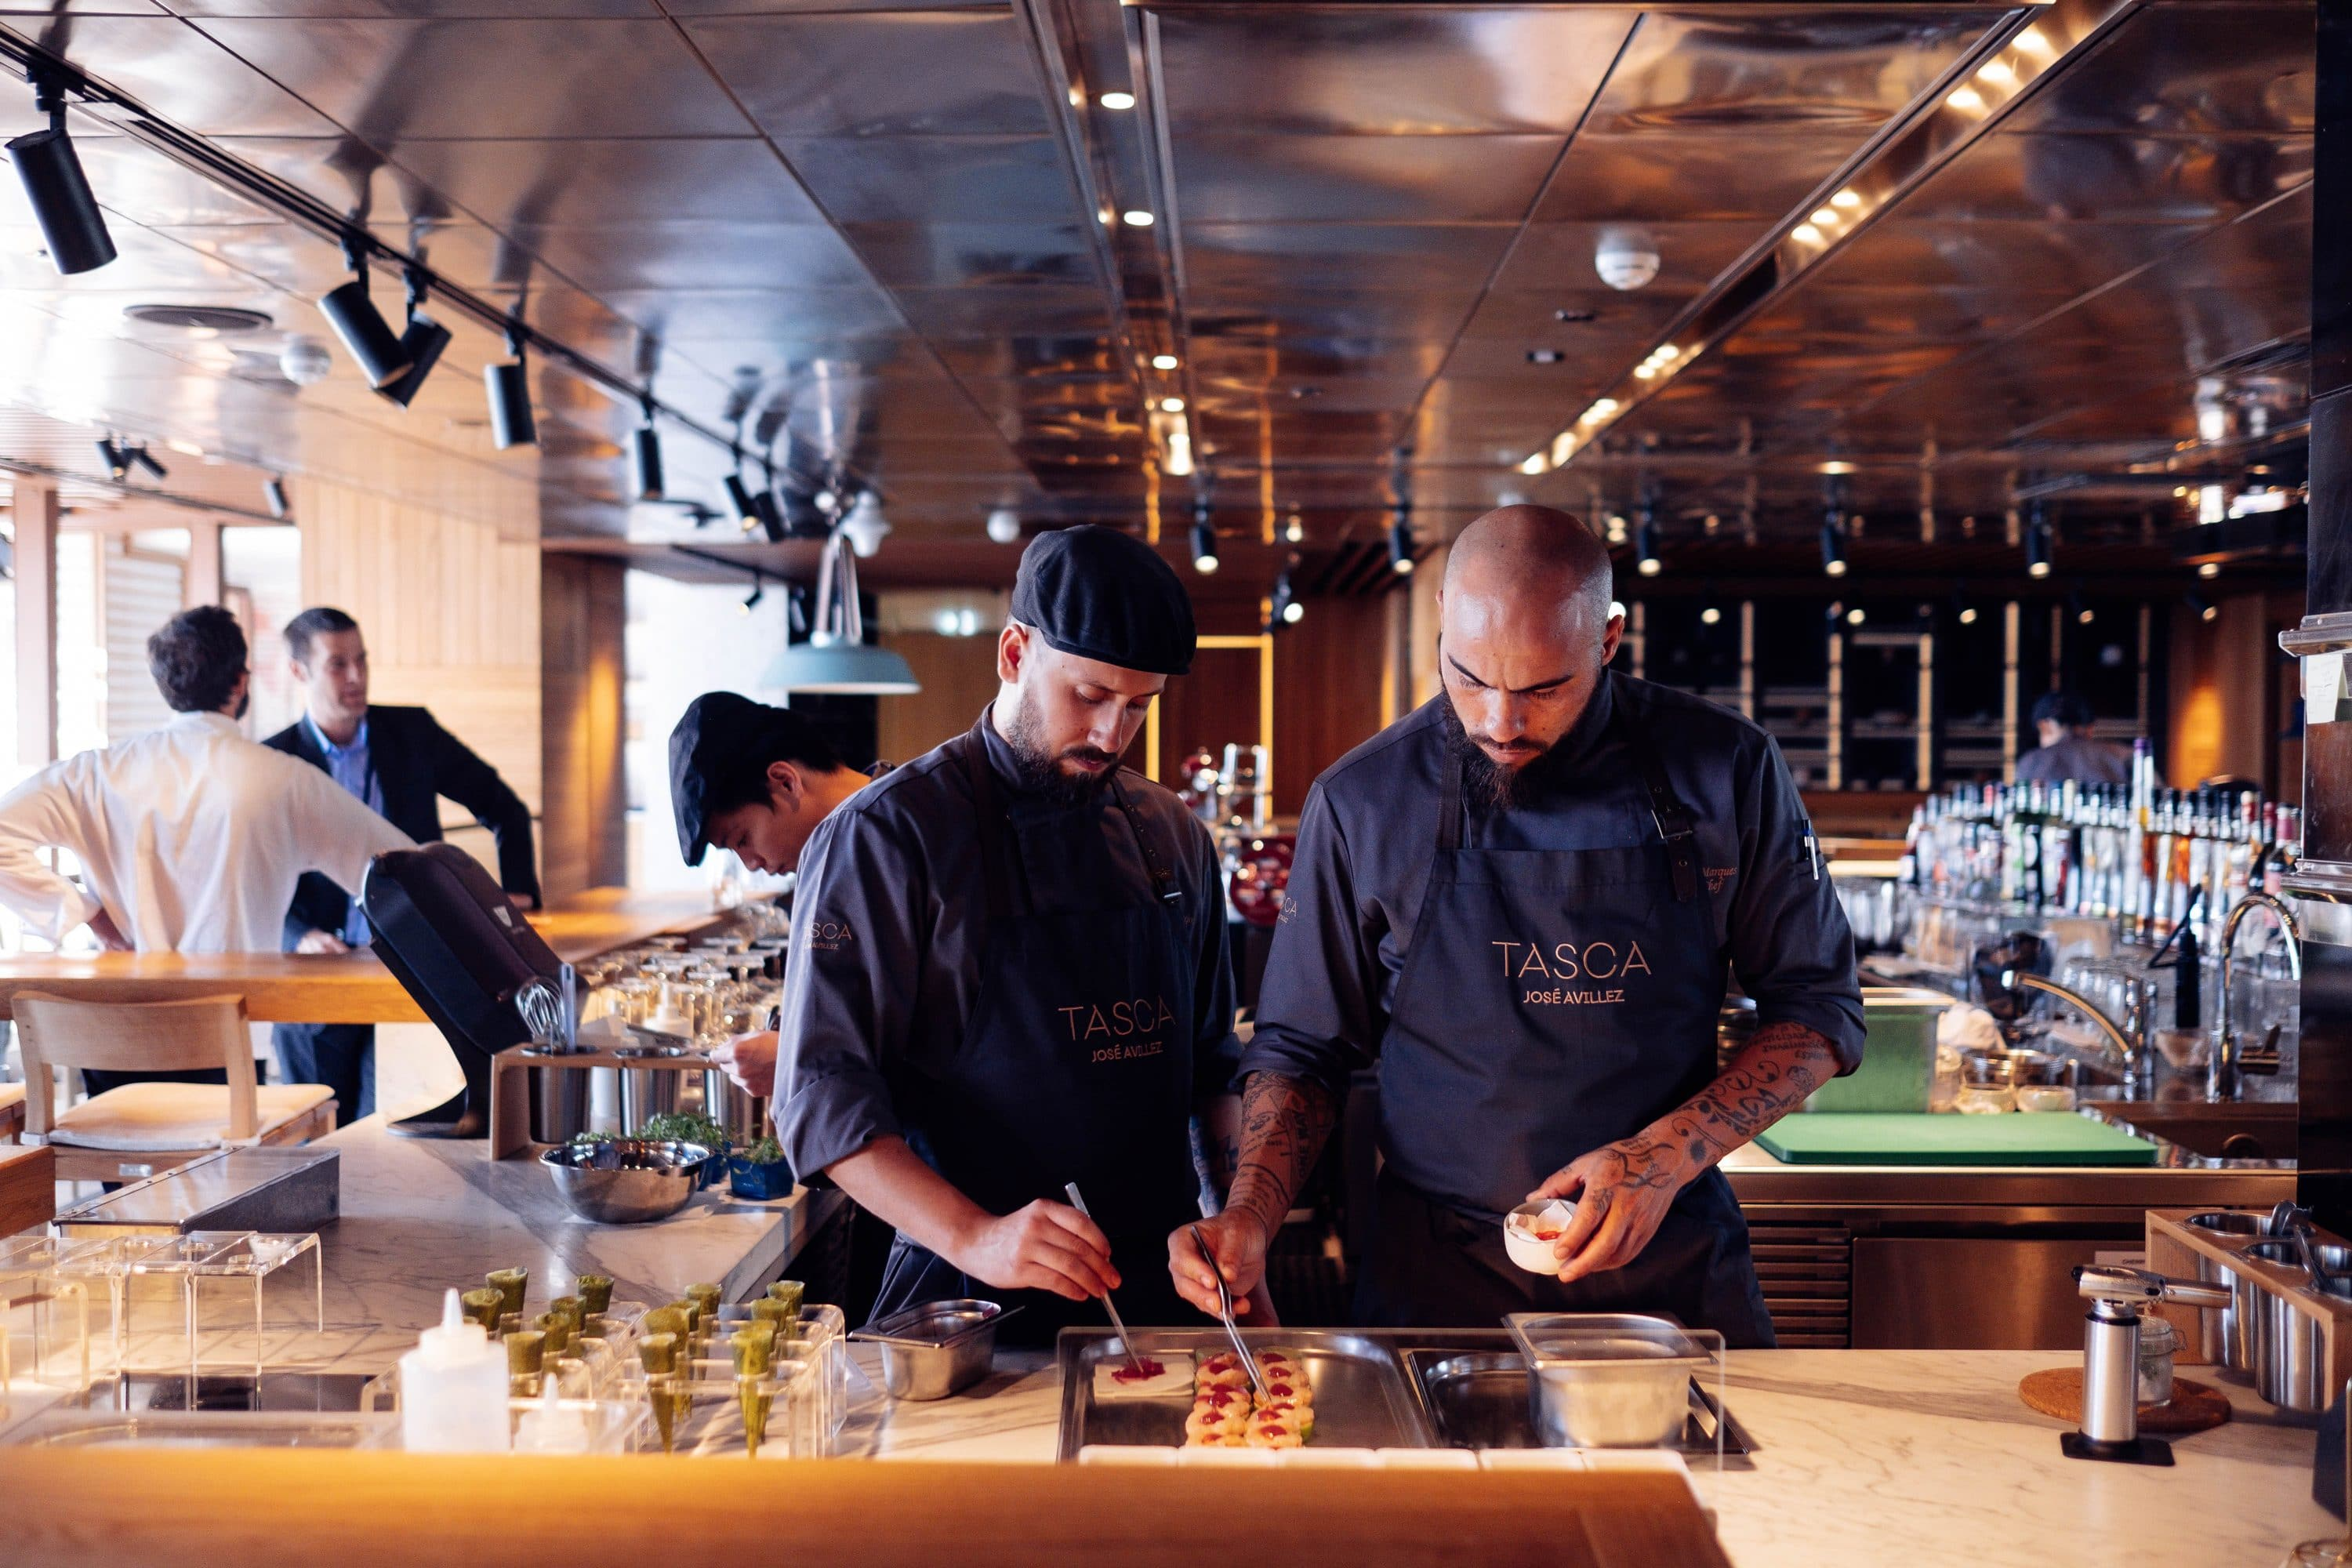 Chefs adding the finishing flourishes to dishes in the open kitchen of Tasca restaurant